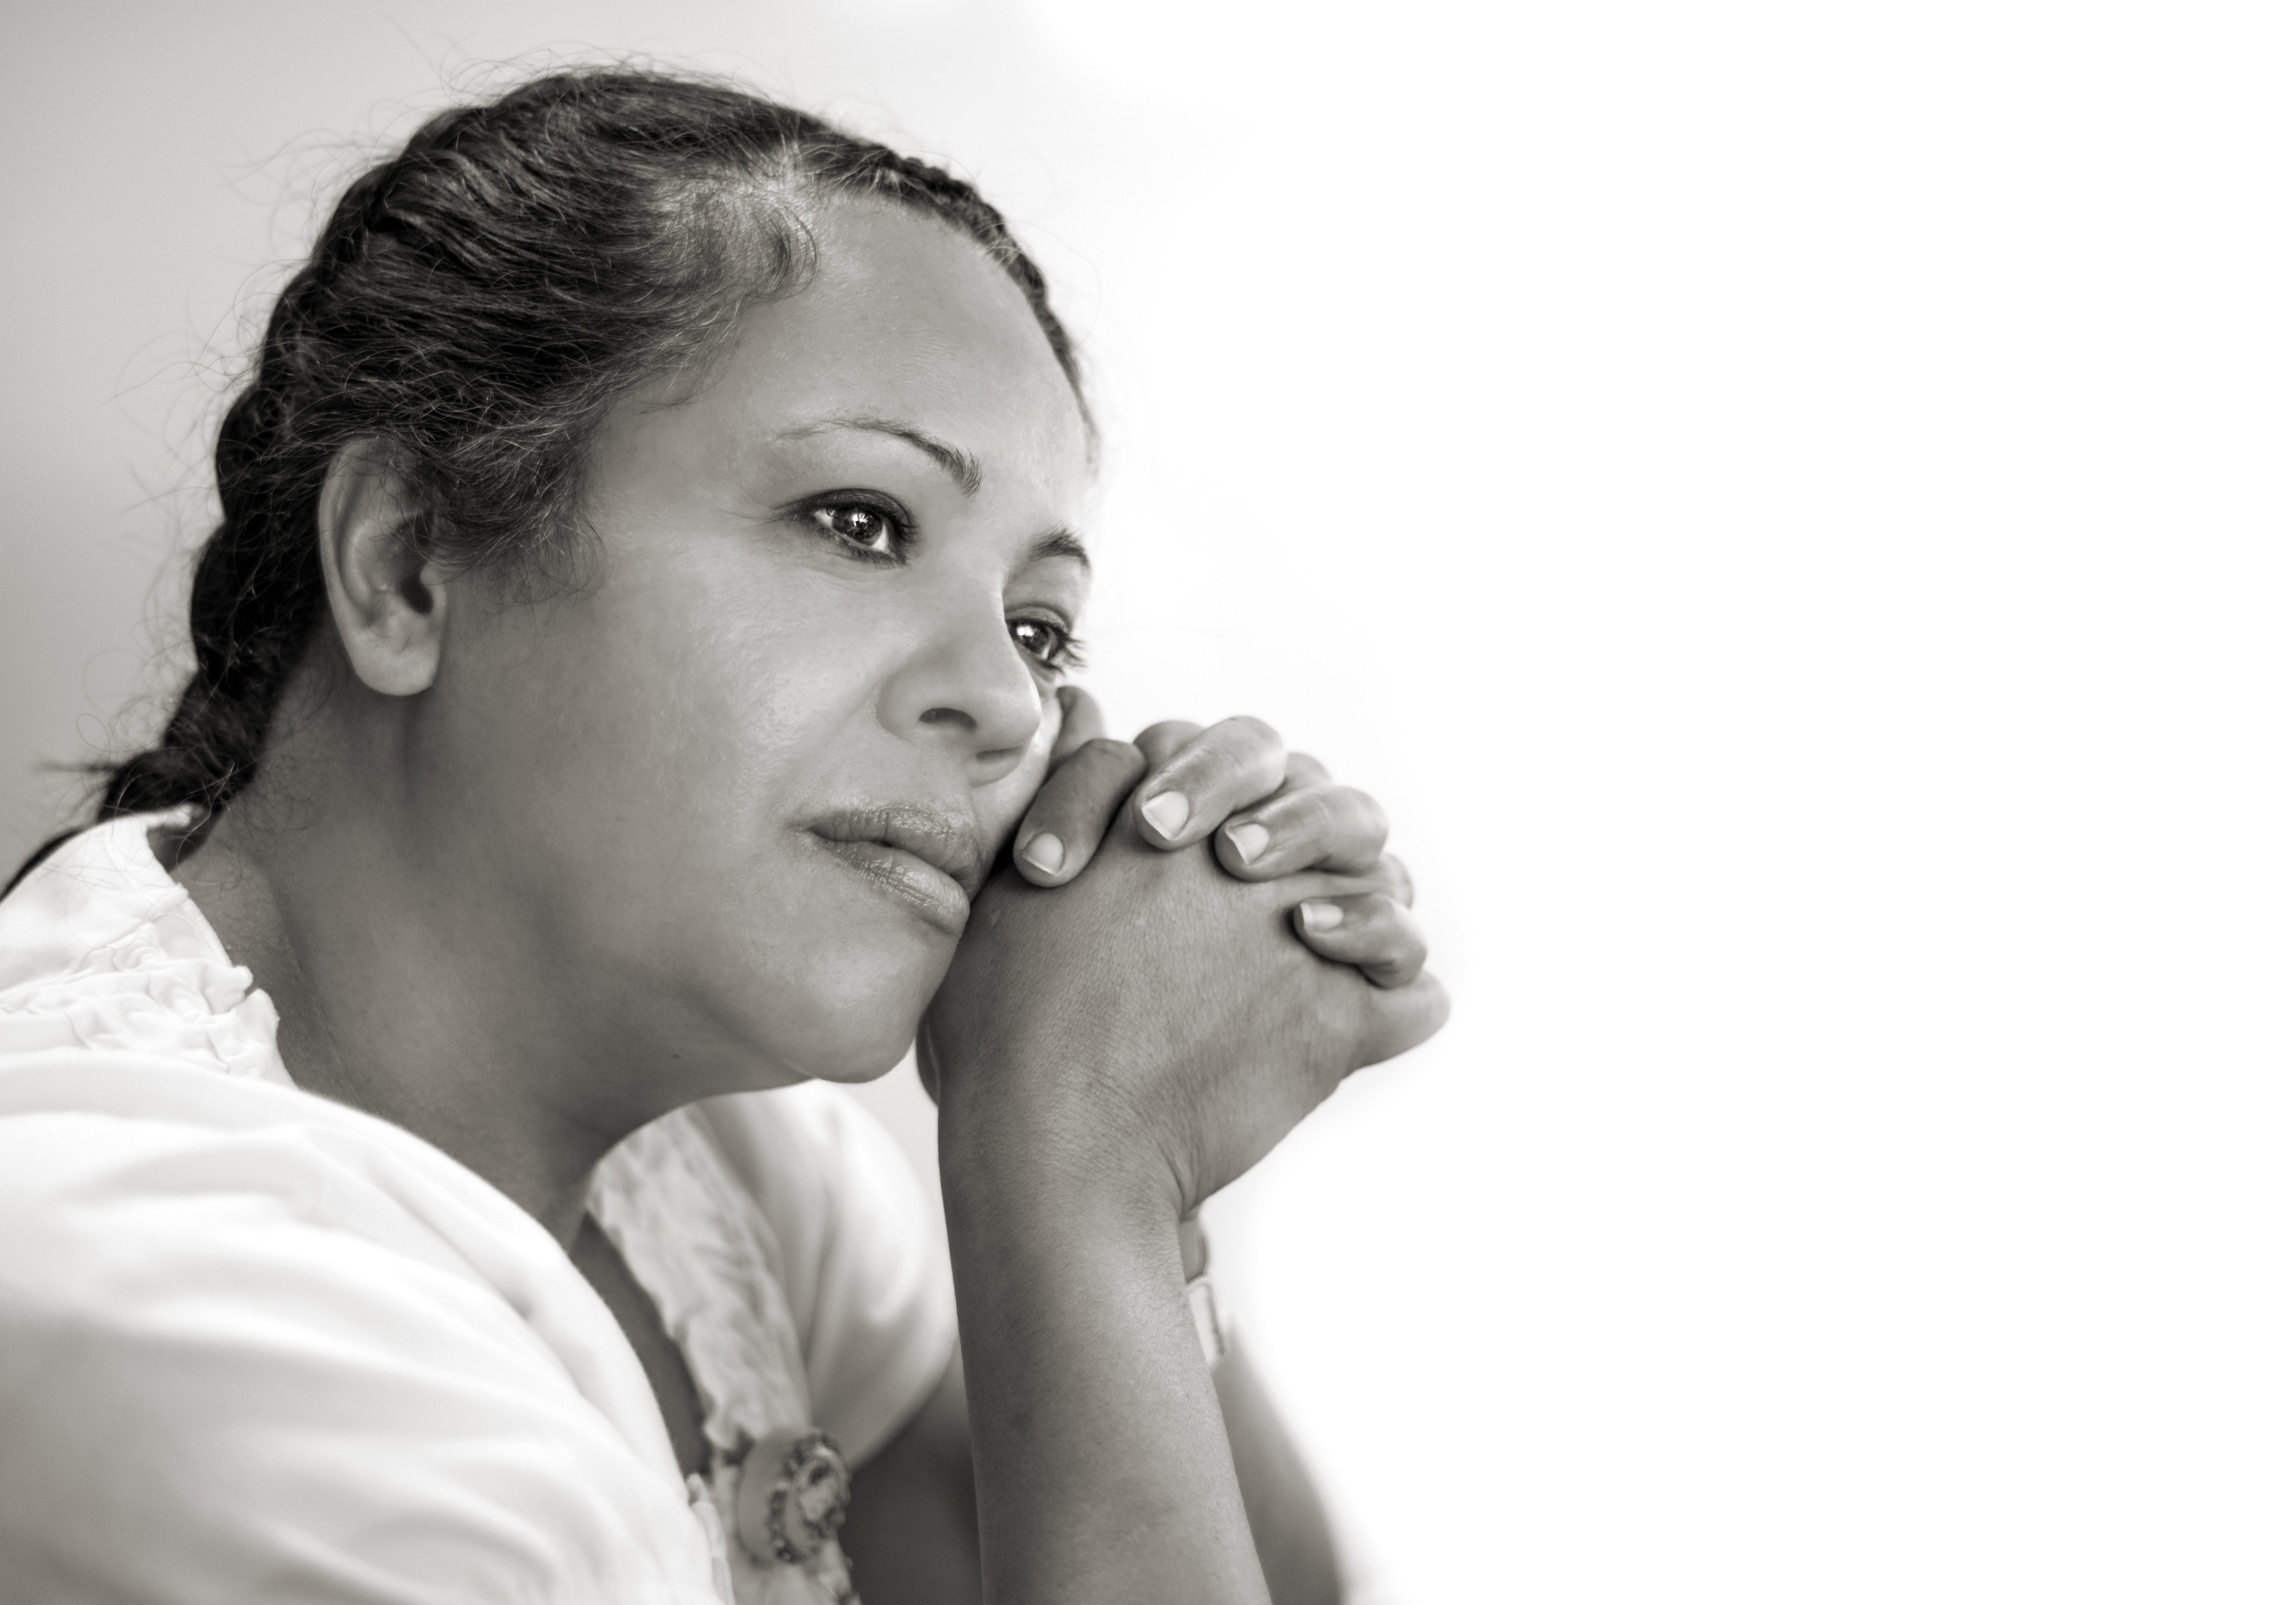 Working With Immigrant Women Futures Without Violence